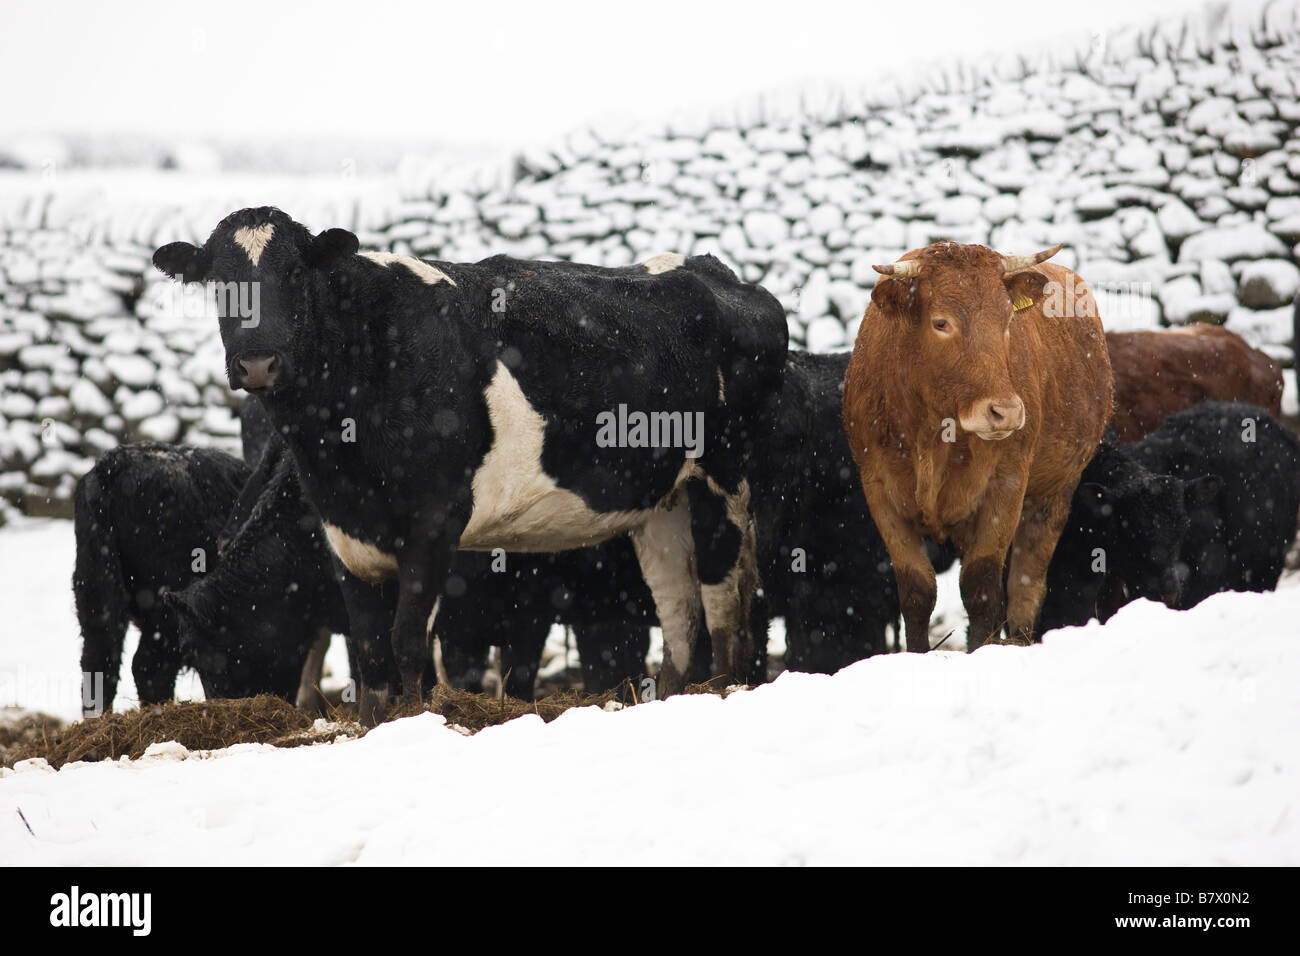 Cattle grouped in snow covered field, Yorkshire UK - Stock Image